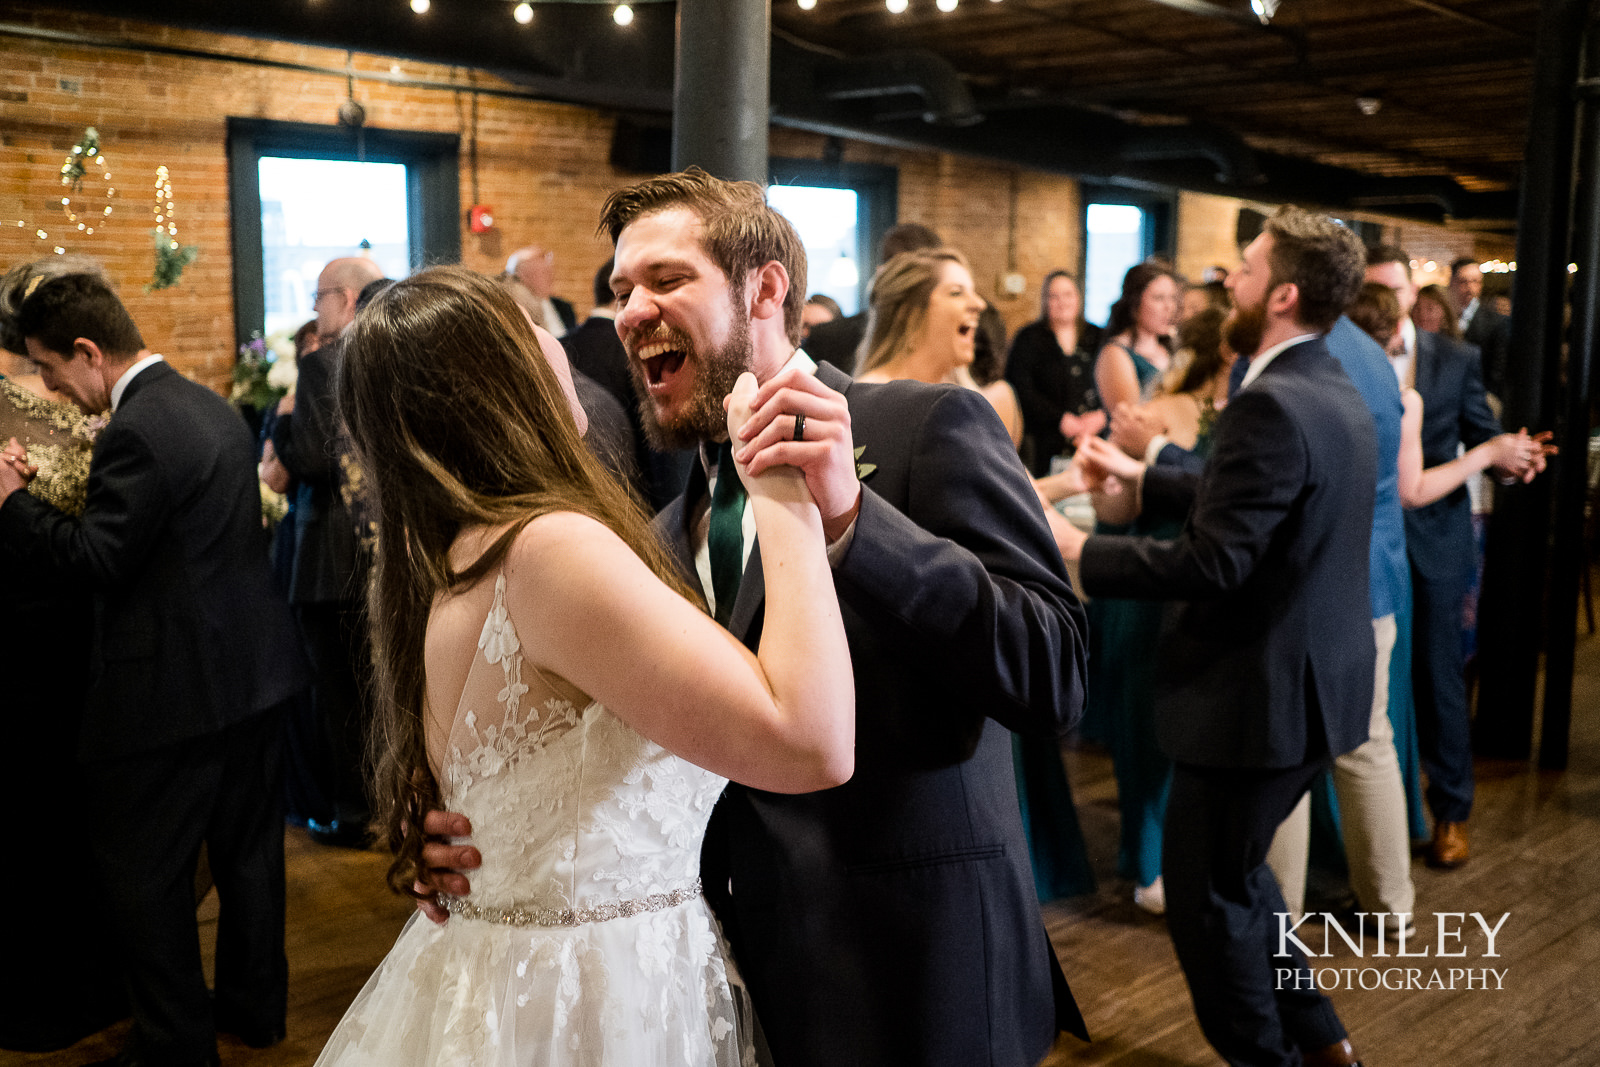 42-Pearl-St-Grill-Wedding-Reception-Buffalo-NY-Kniley-Photography.jpg